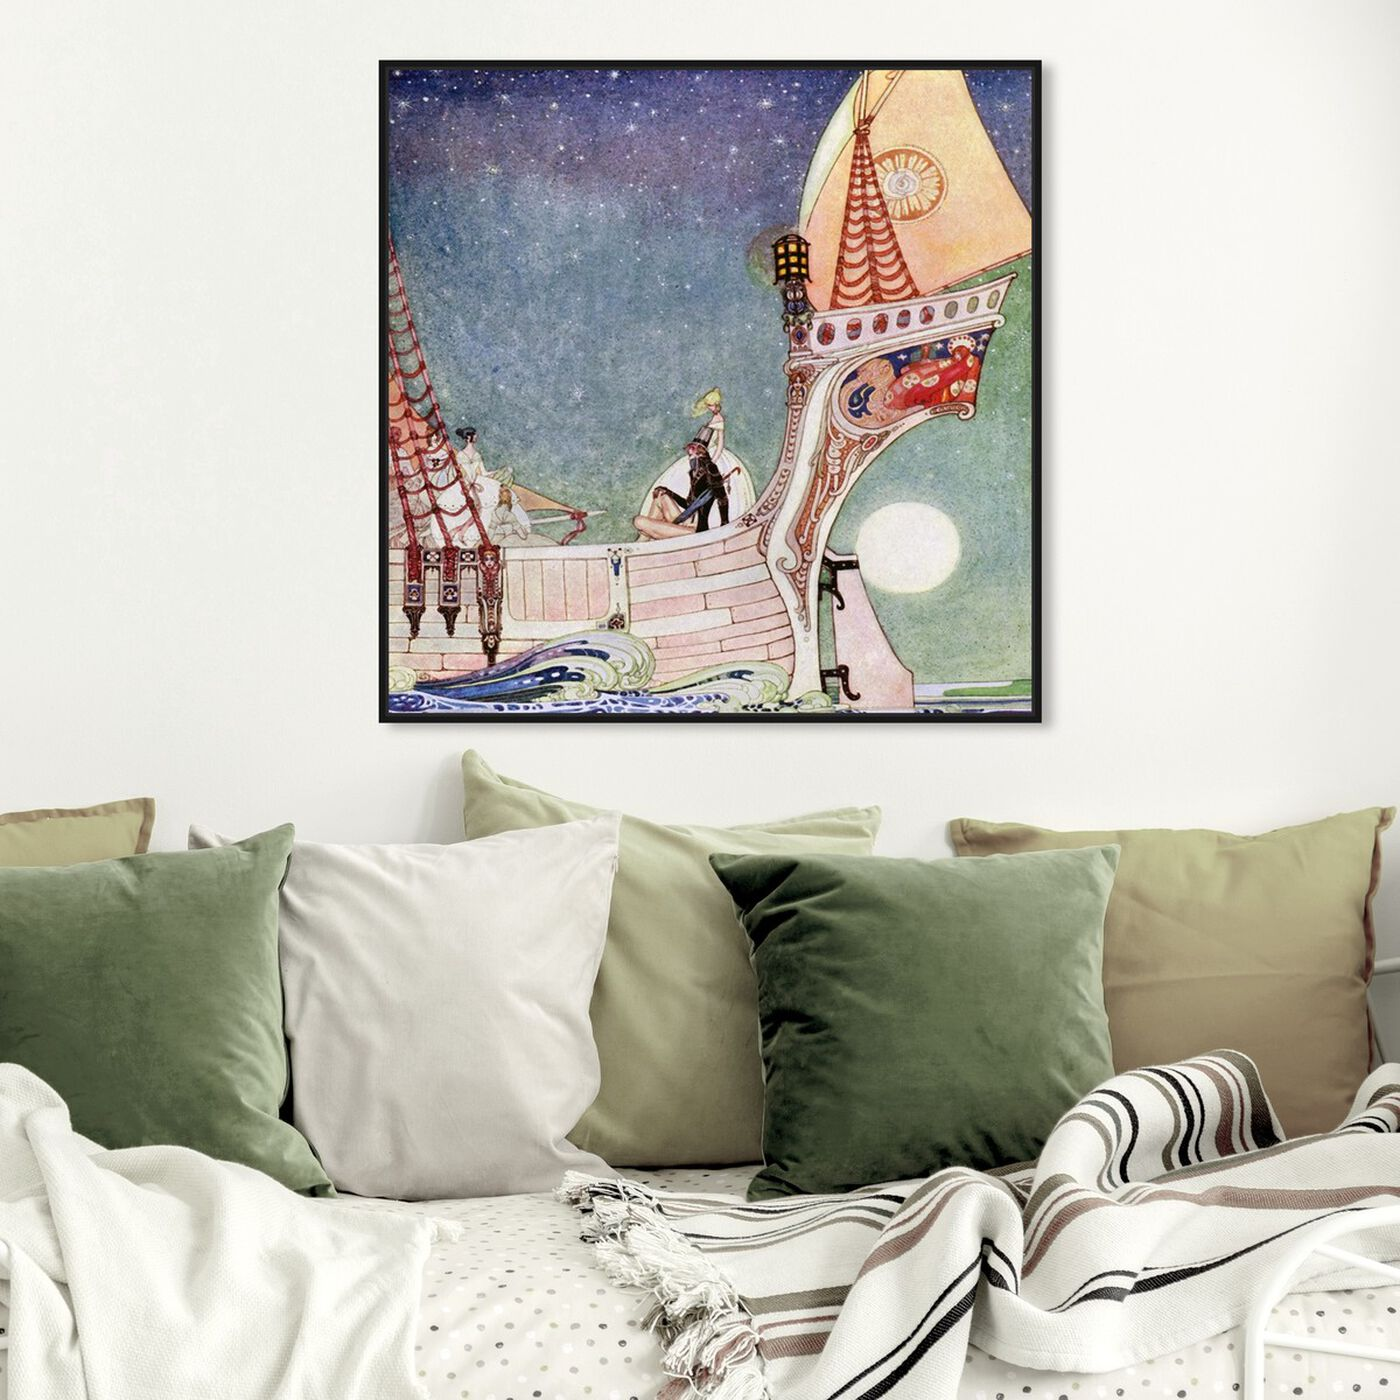 Hanging view of Magical Boat featuring fantasy and sci-fi and fairy tales art.